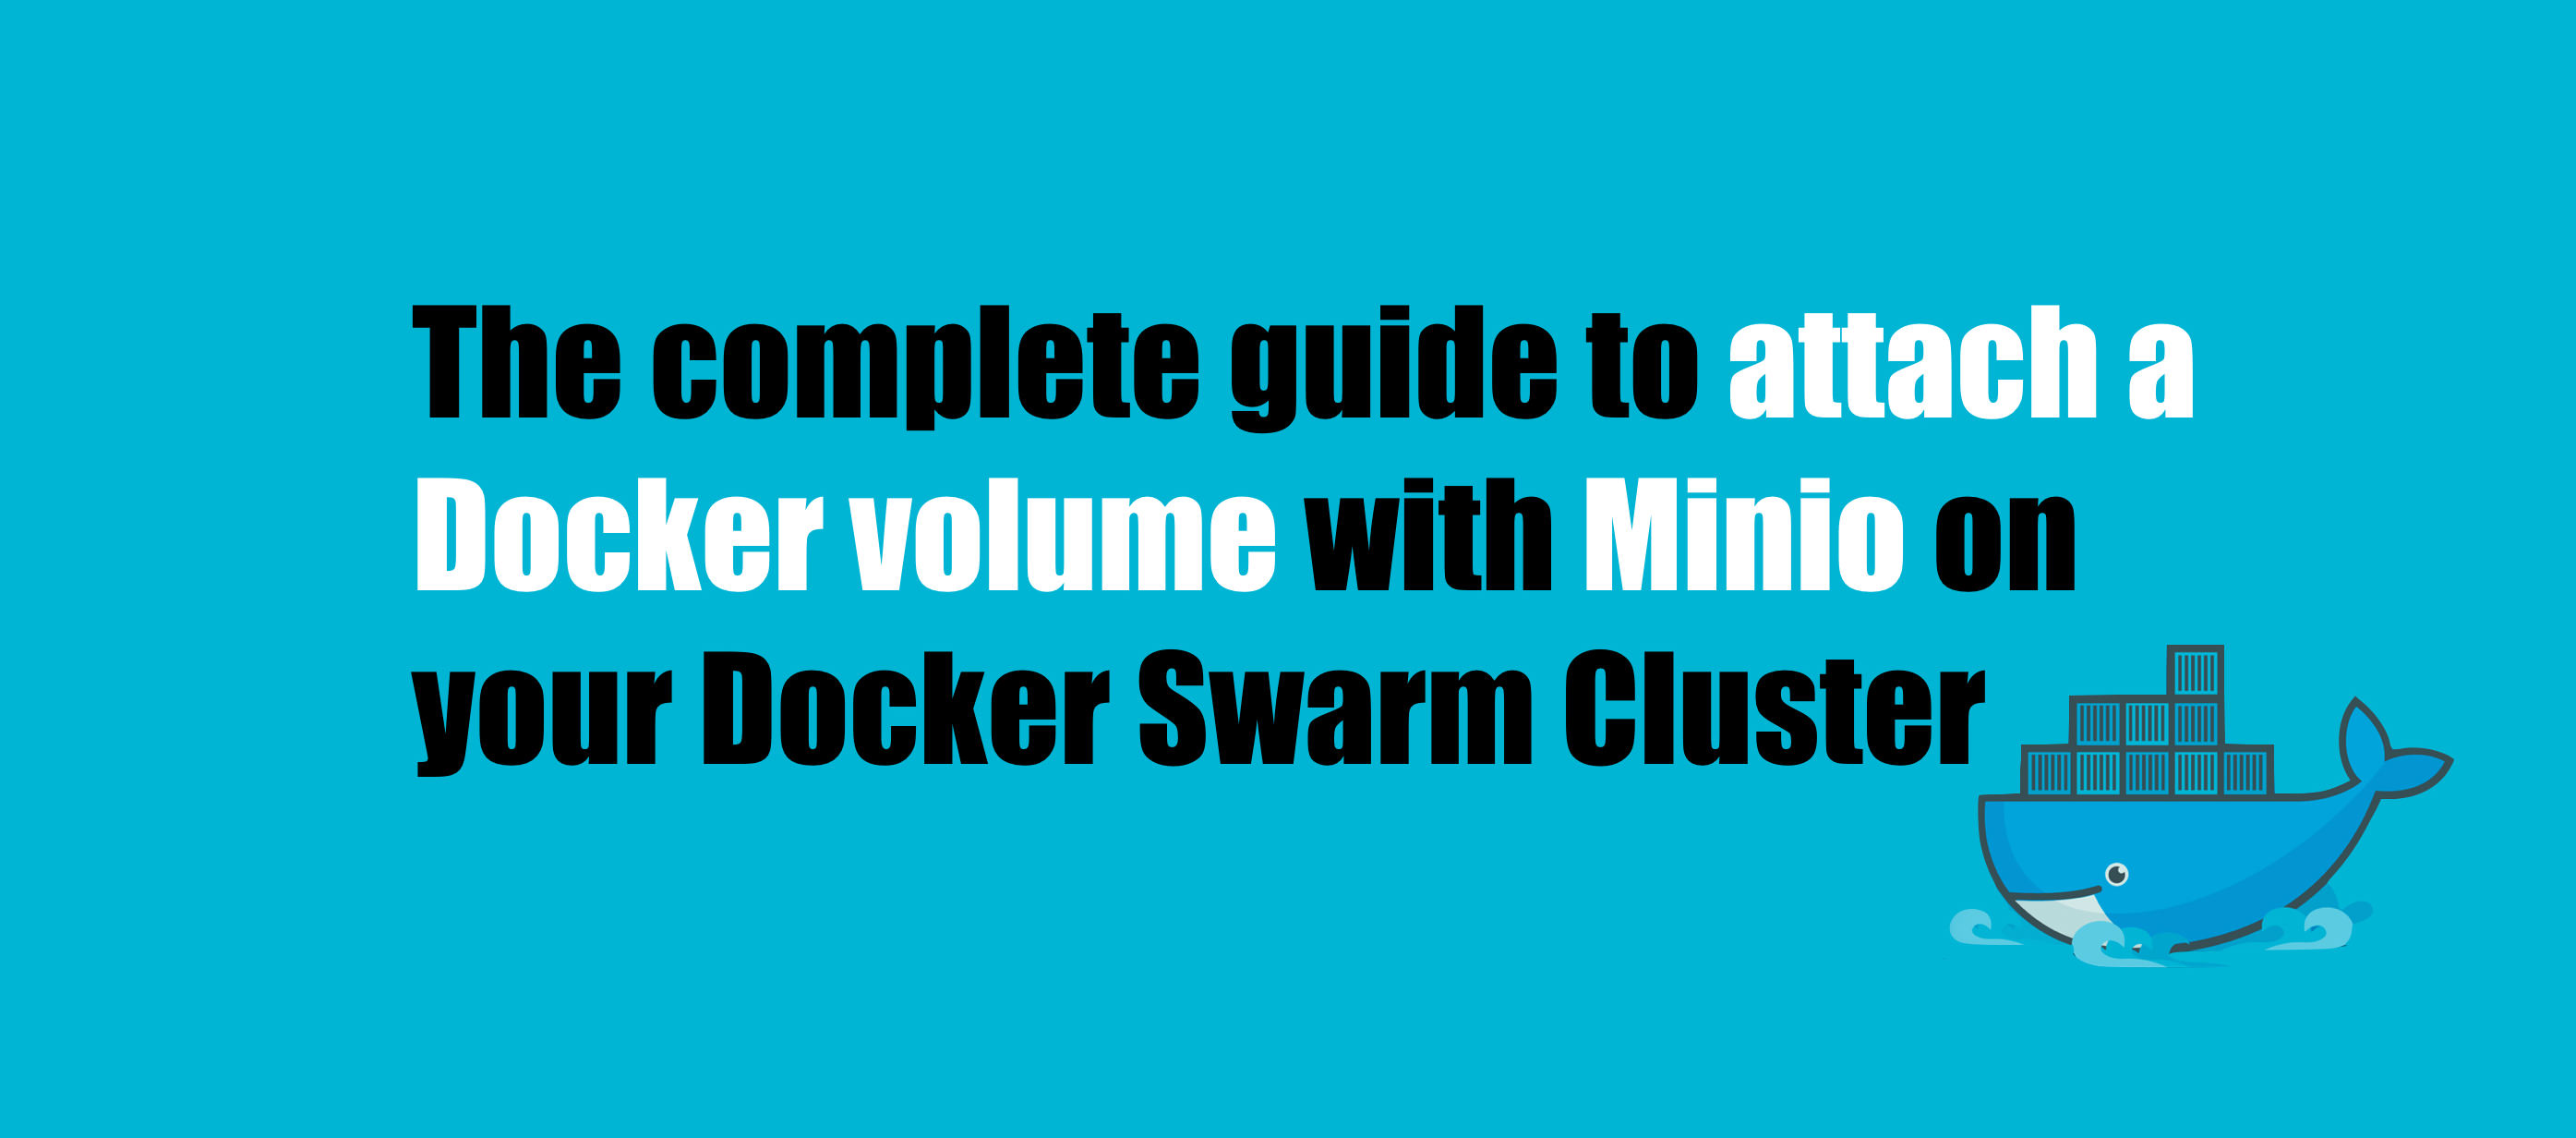 The complete guide: Attach Docker volumes with Minio in your Docker